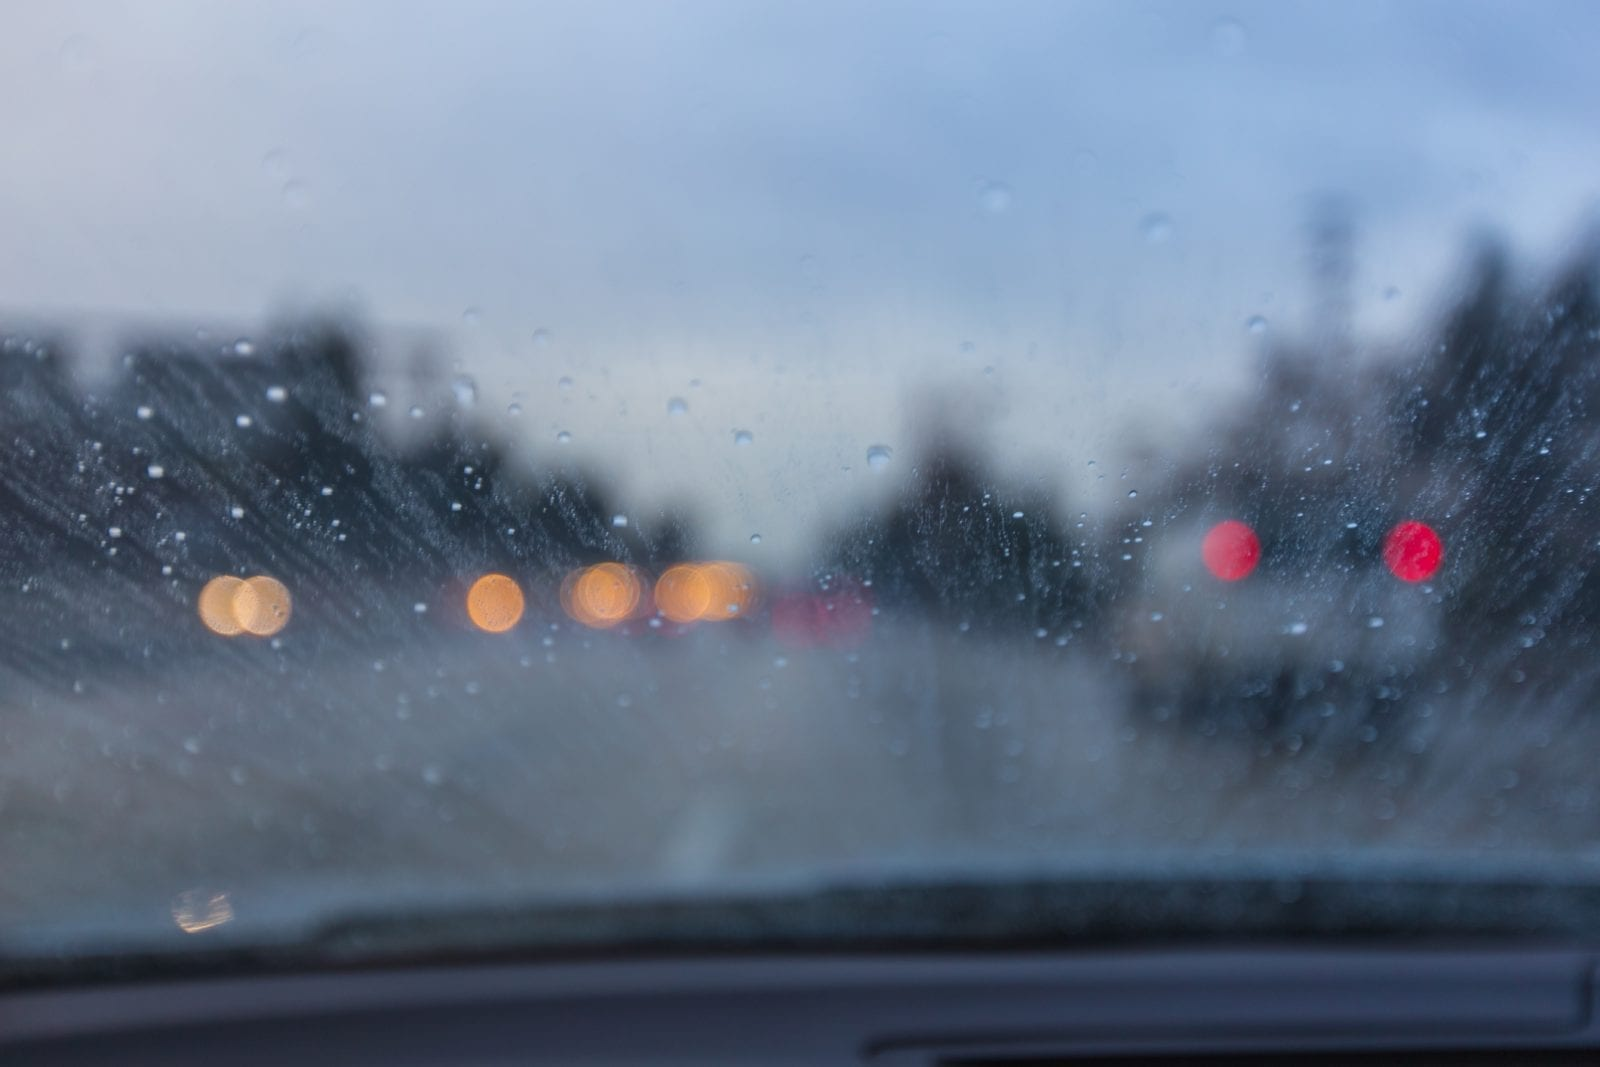 How to demist your car windows quickly and effectively